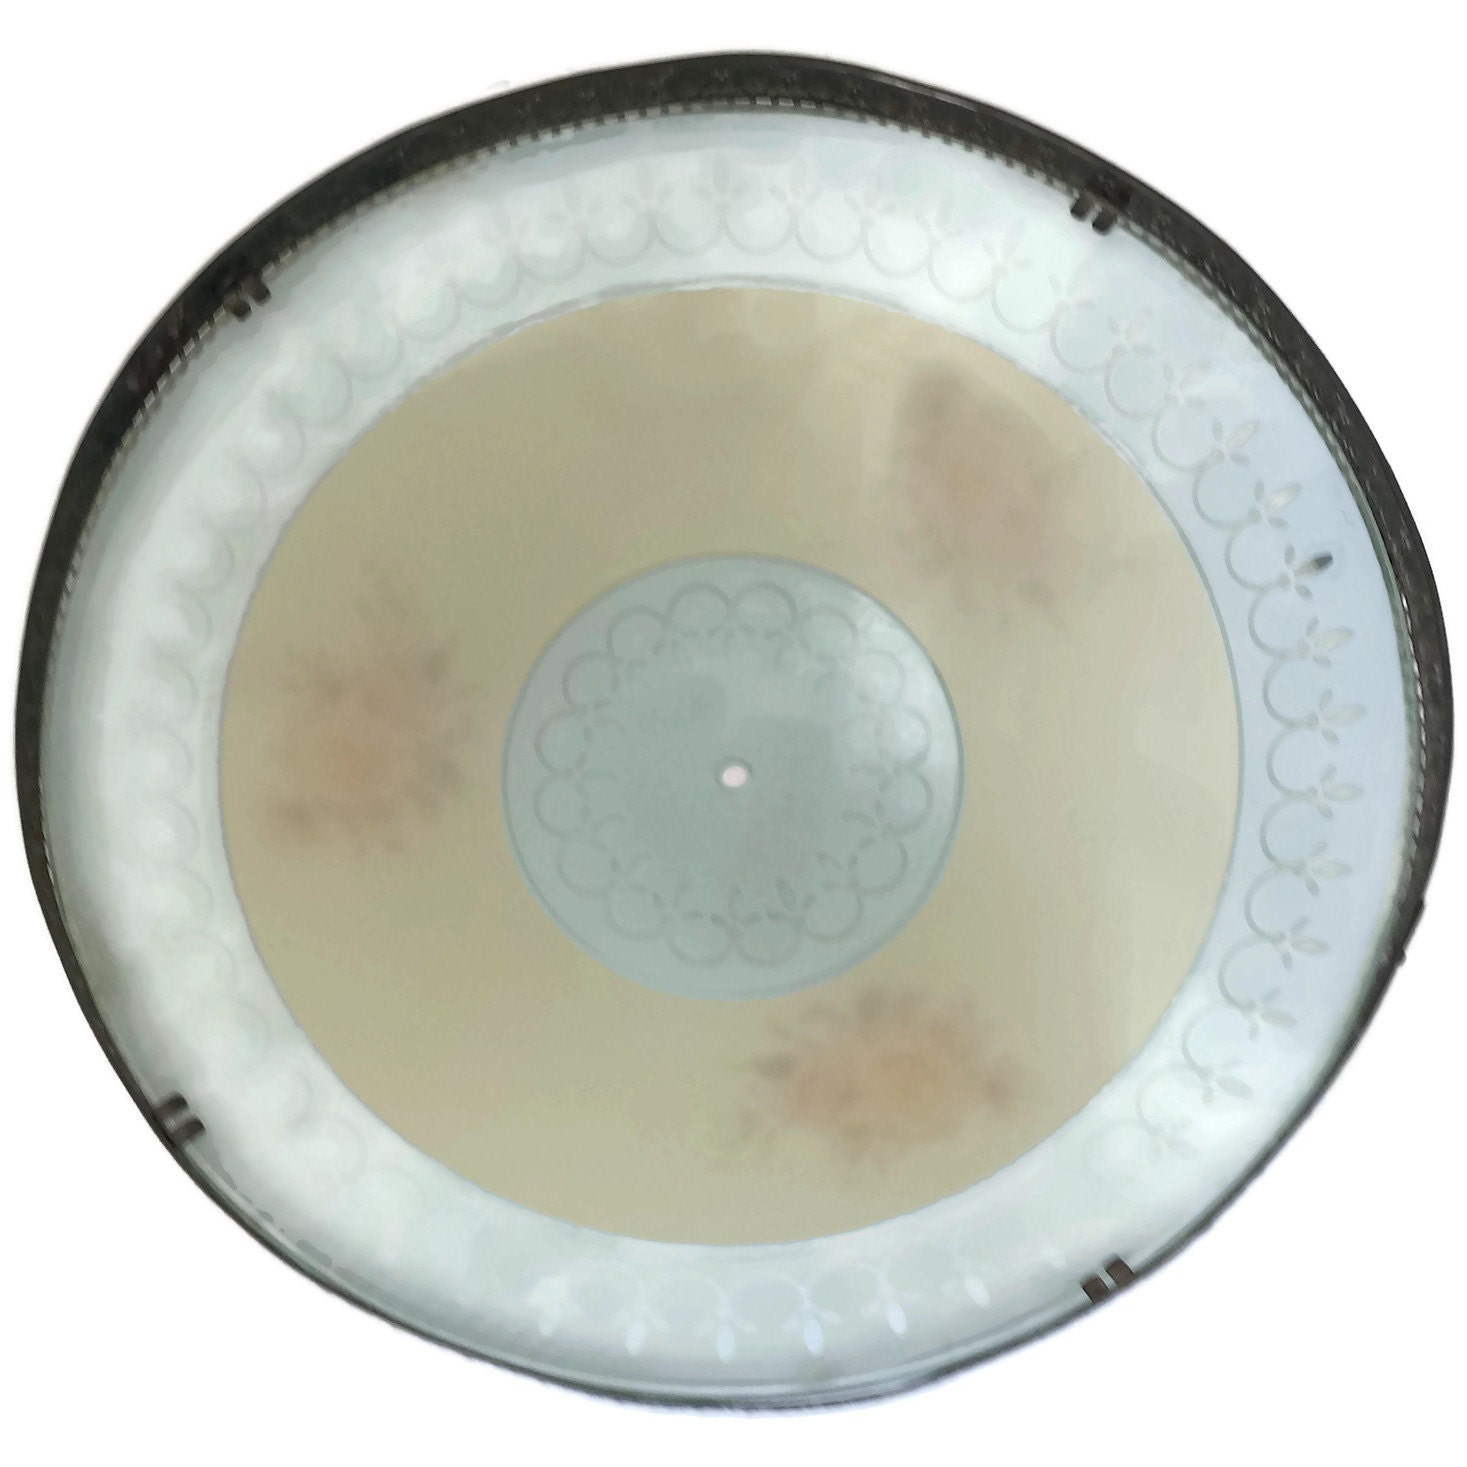 Ceiling Light Cover Only : Glass shade overhead ceiling dome light cover by